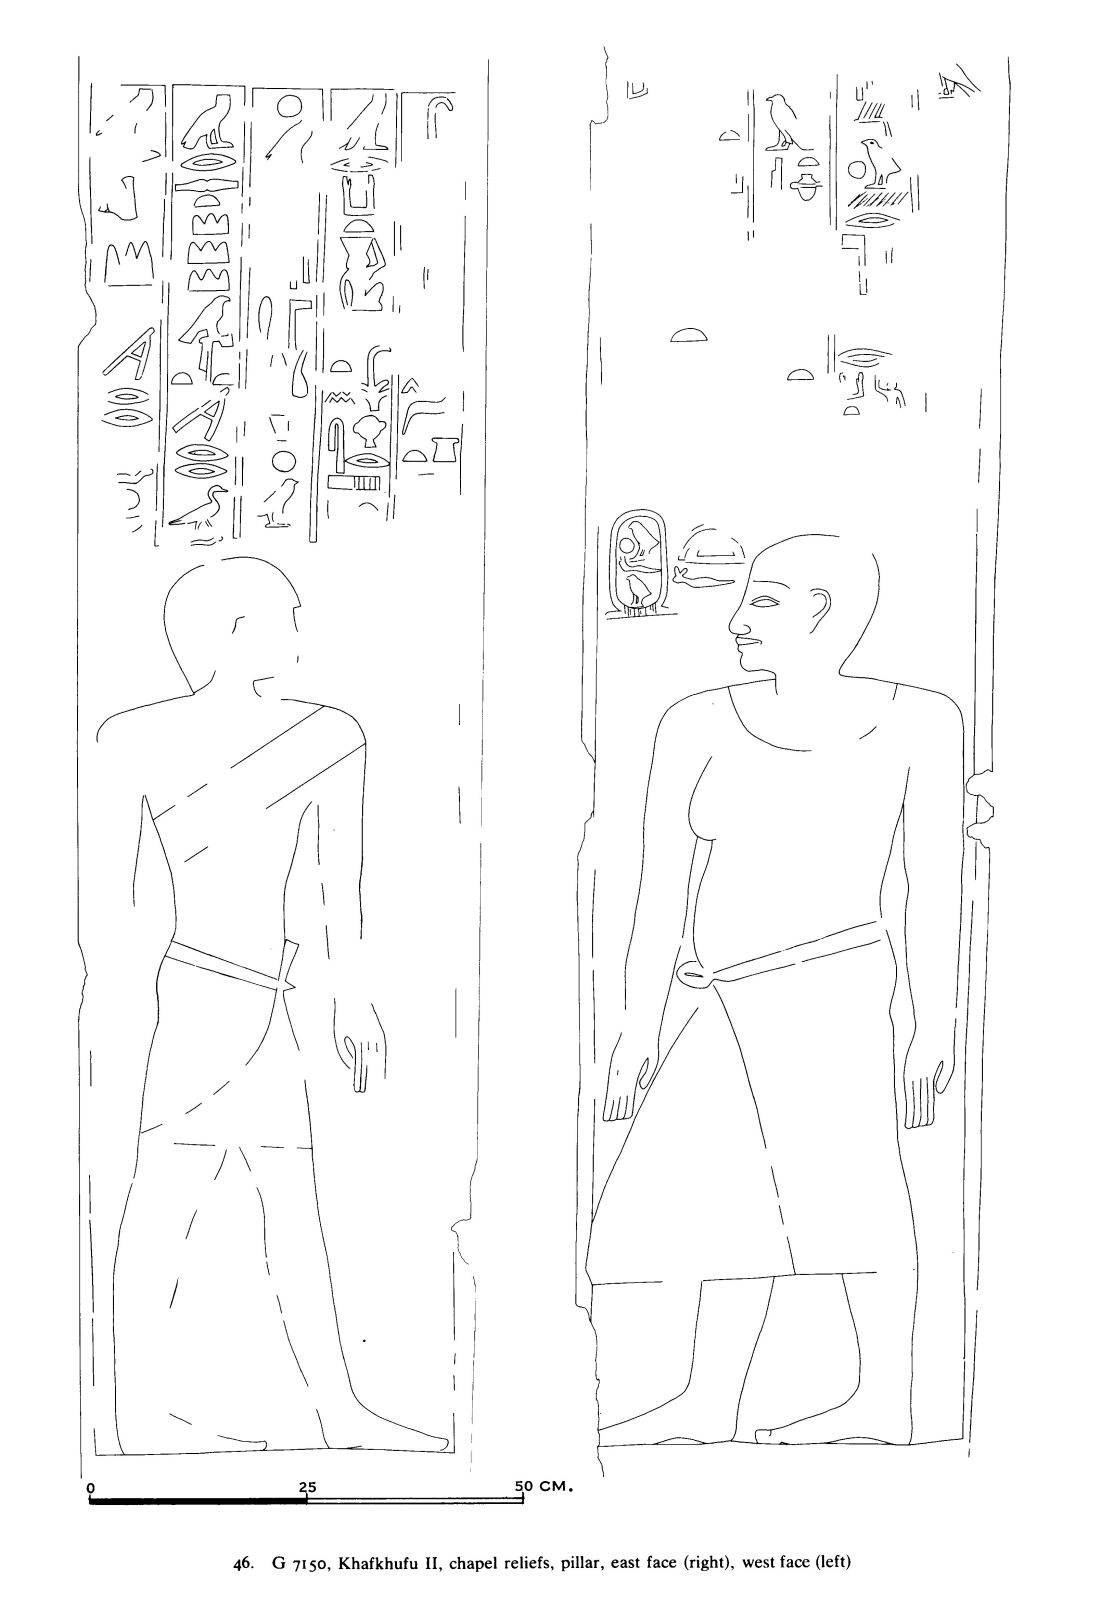 Drawings: G 7150: relief from chapel, exterior, pillars